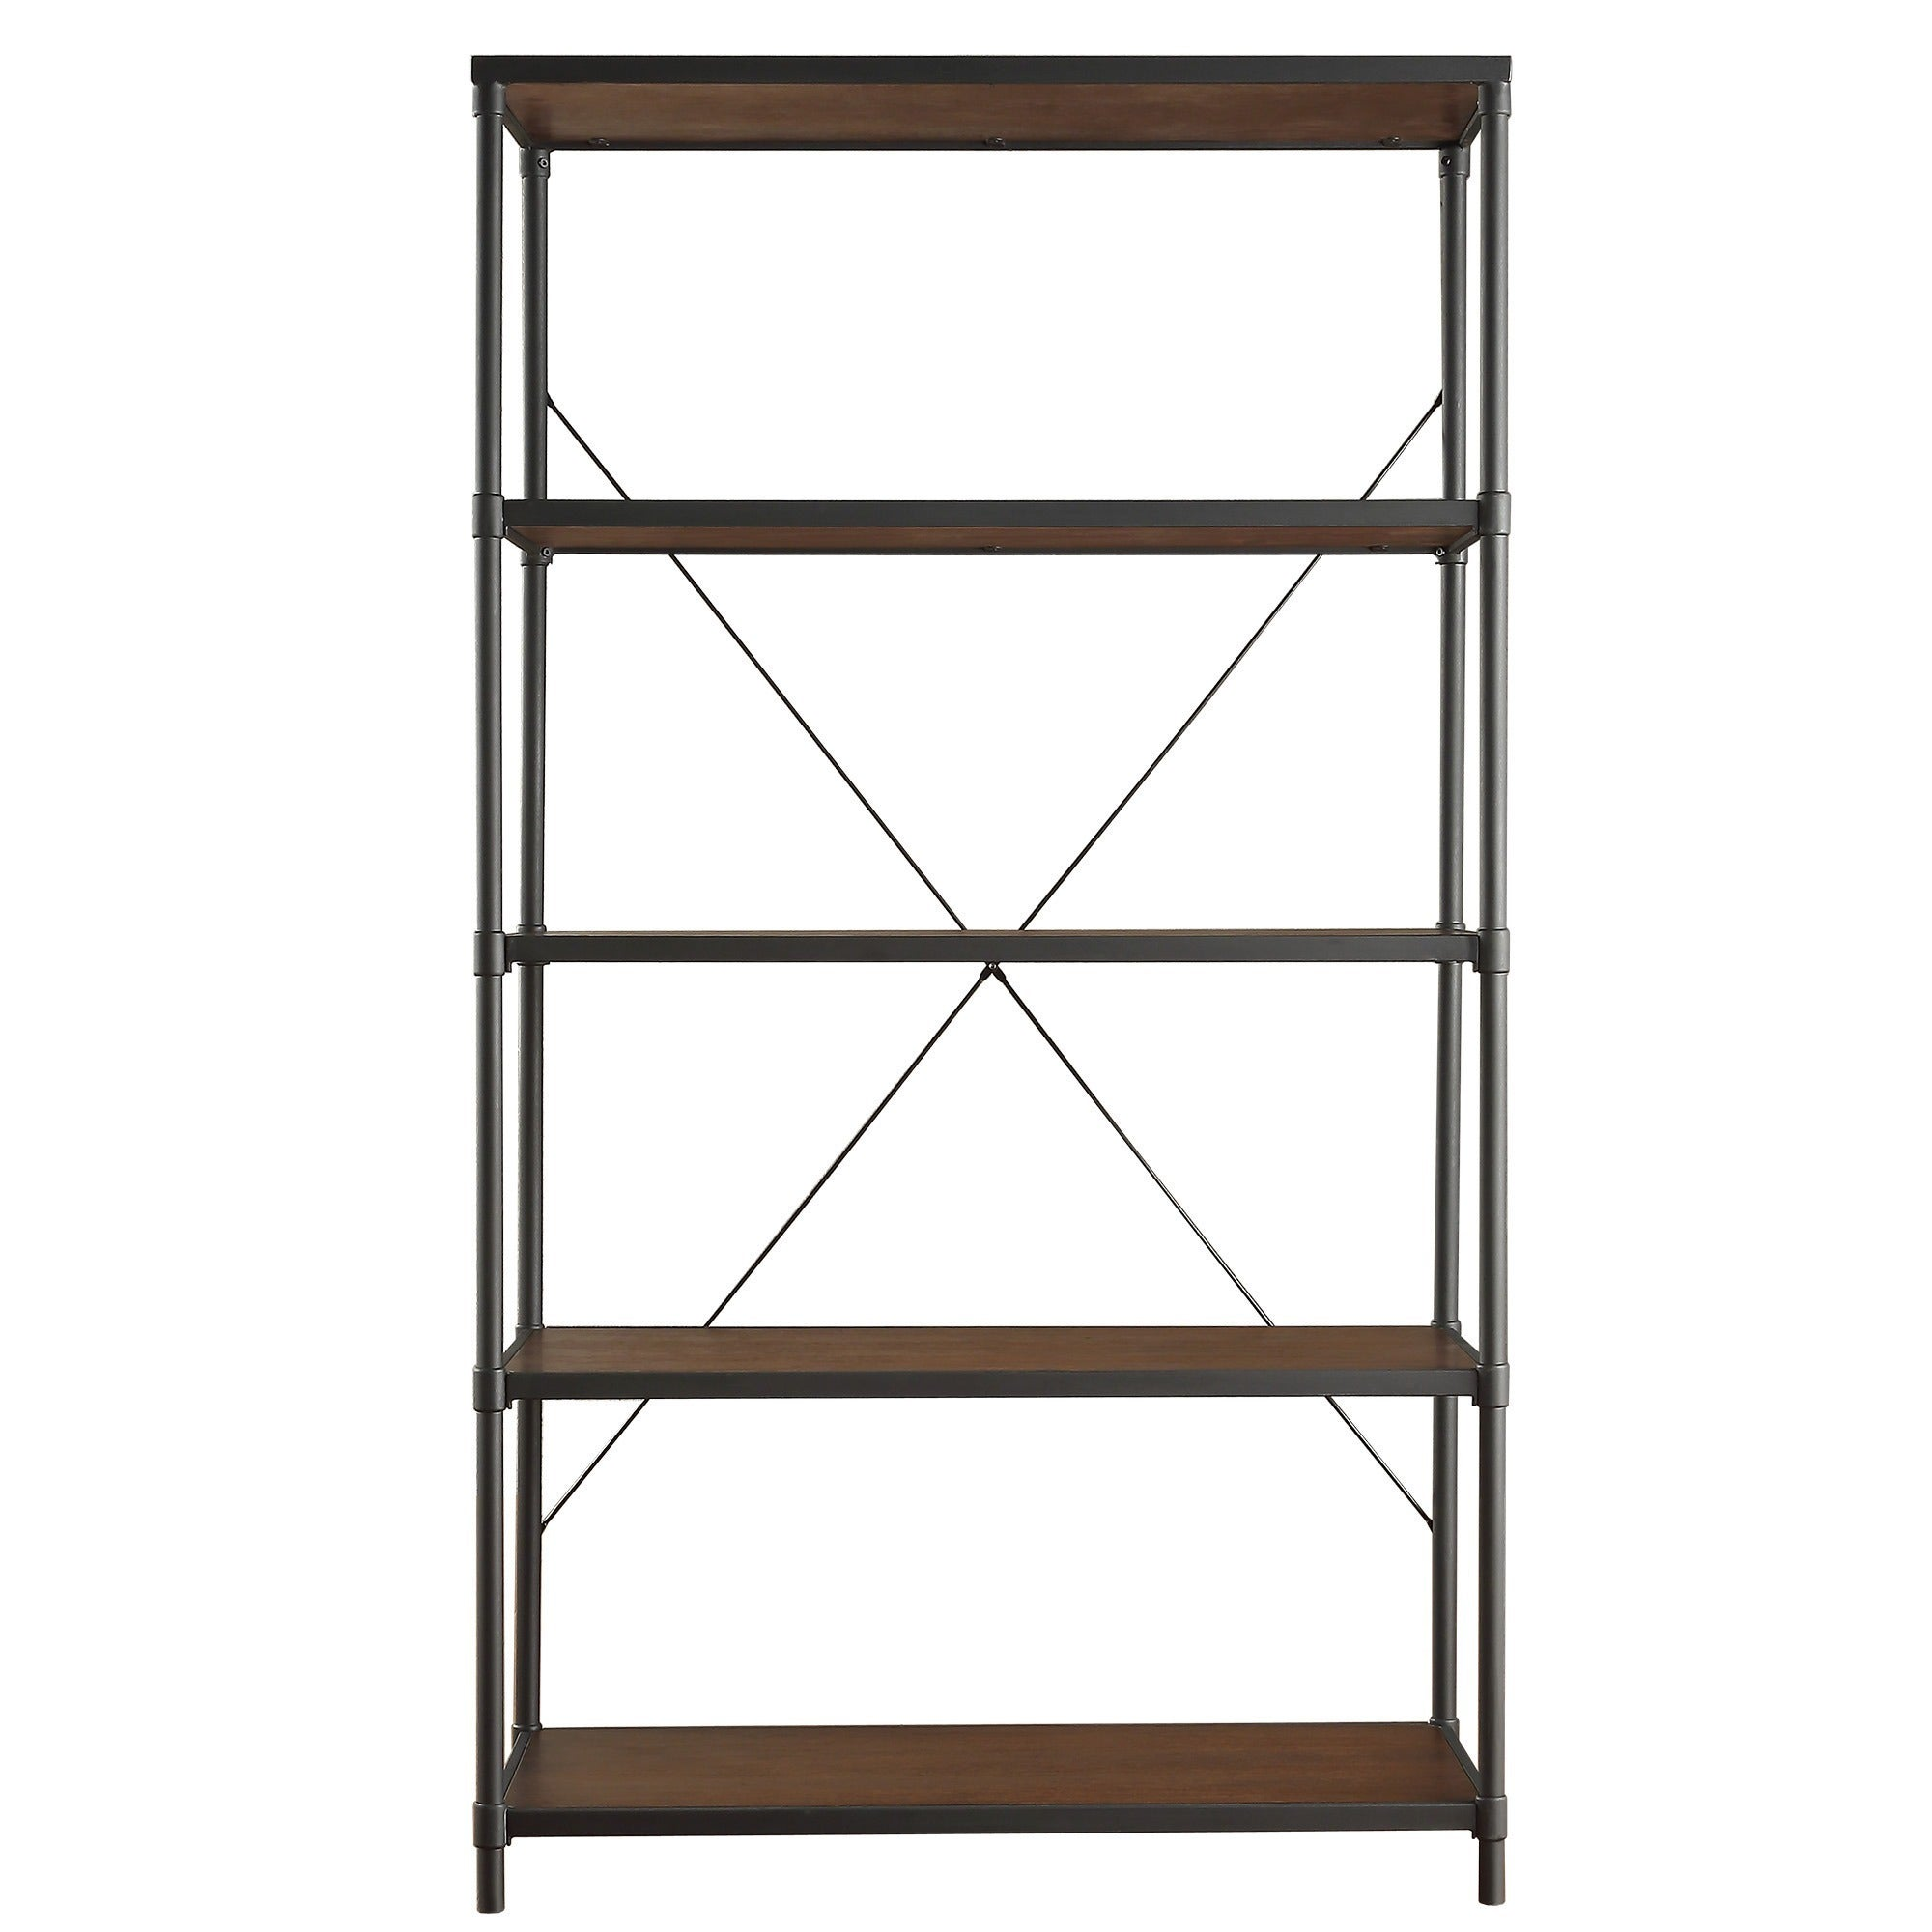 Shop Harrison Industrial Rustic Pipe Frame Shelf Media Tower by ...